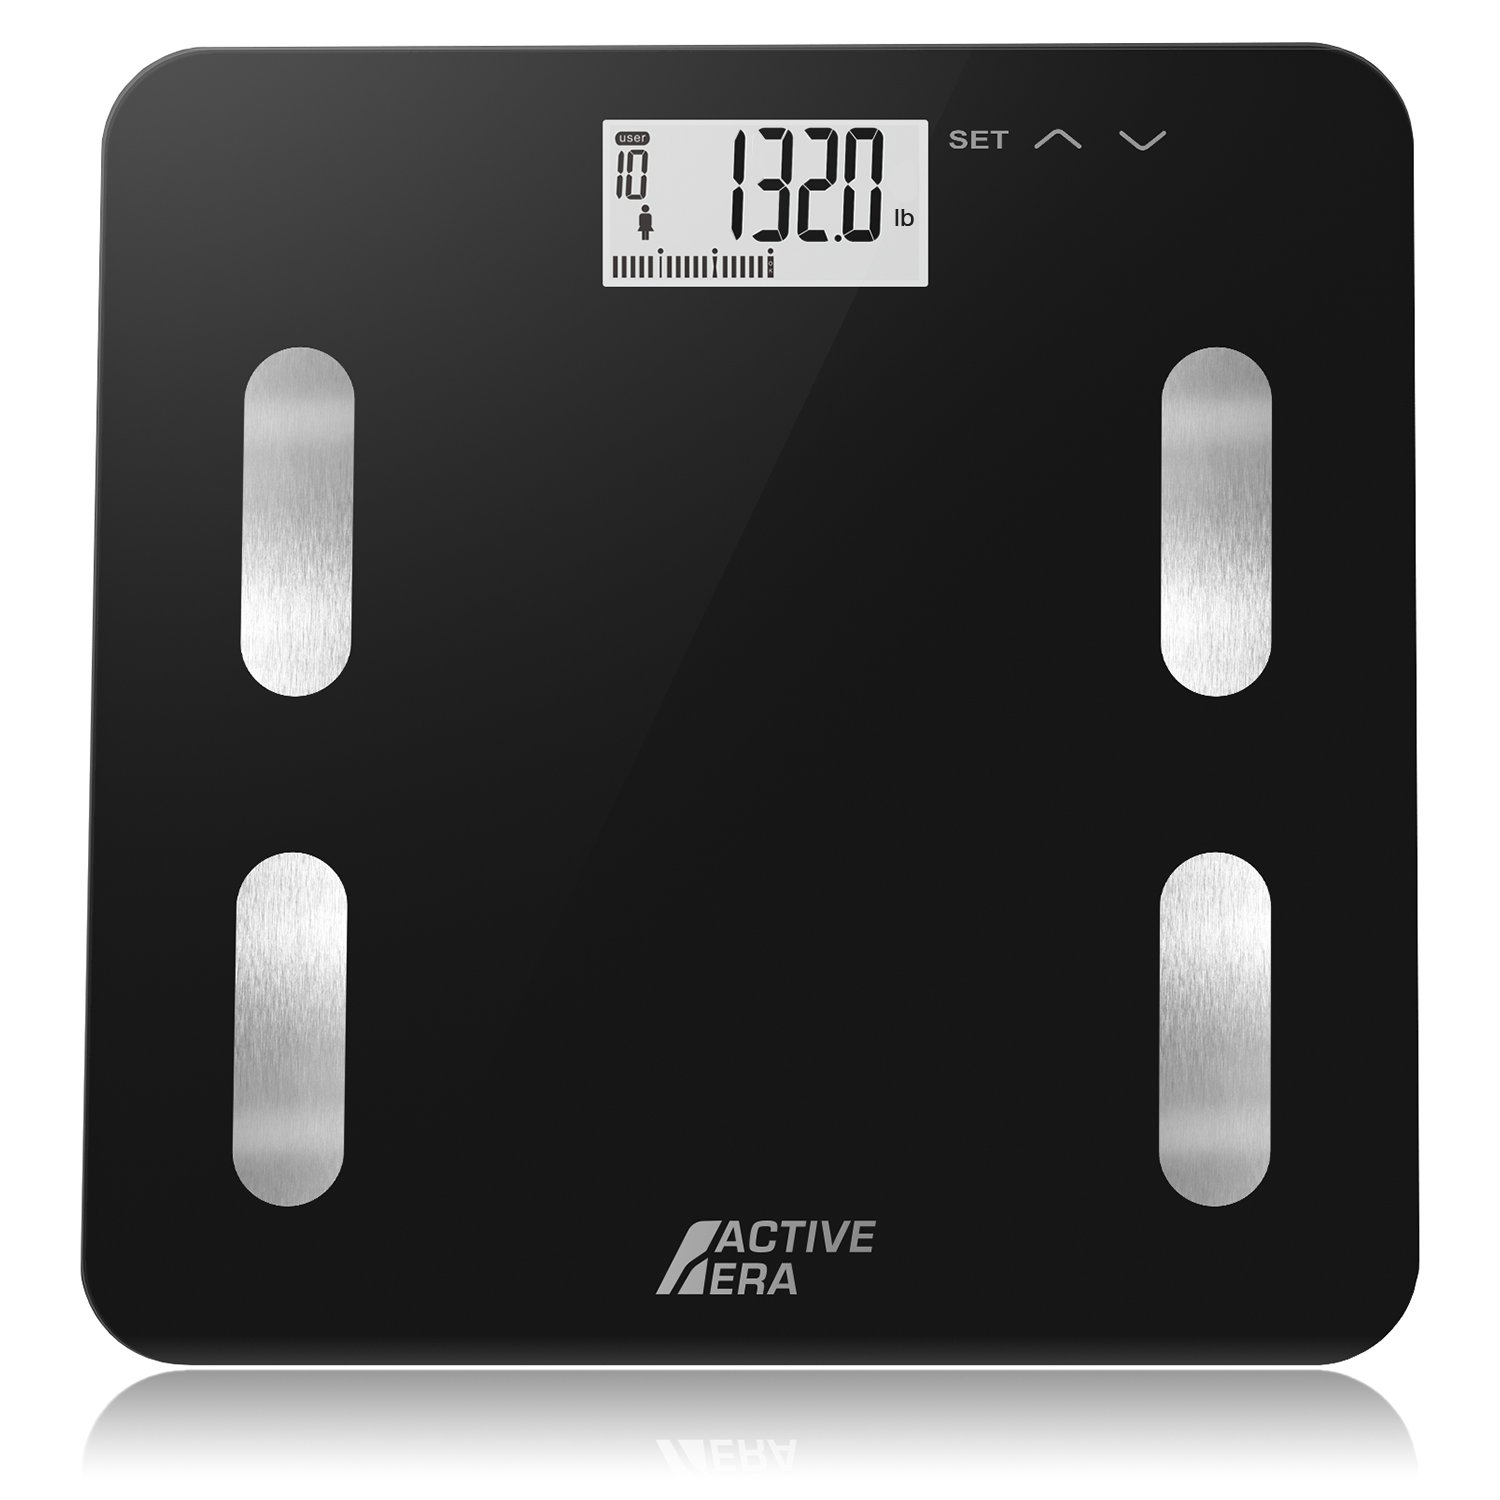 Active Era Digital Body Weight Bathroom Scale - Body Fat Analyzer with BF%, BMI, Age, Weight & Height | Made from Ultra Strong Tempered Glass with LCD Display and Auto On/Off (Black)